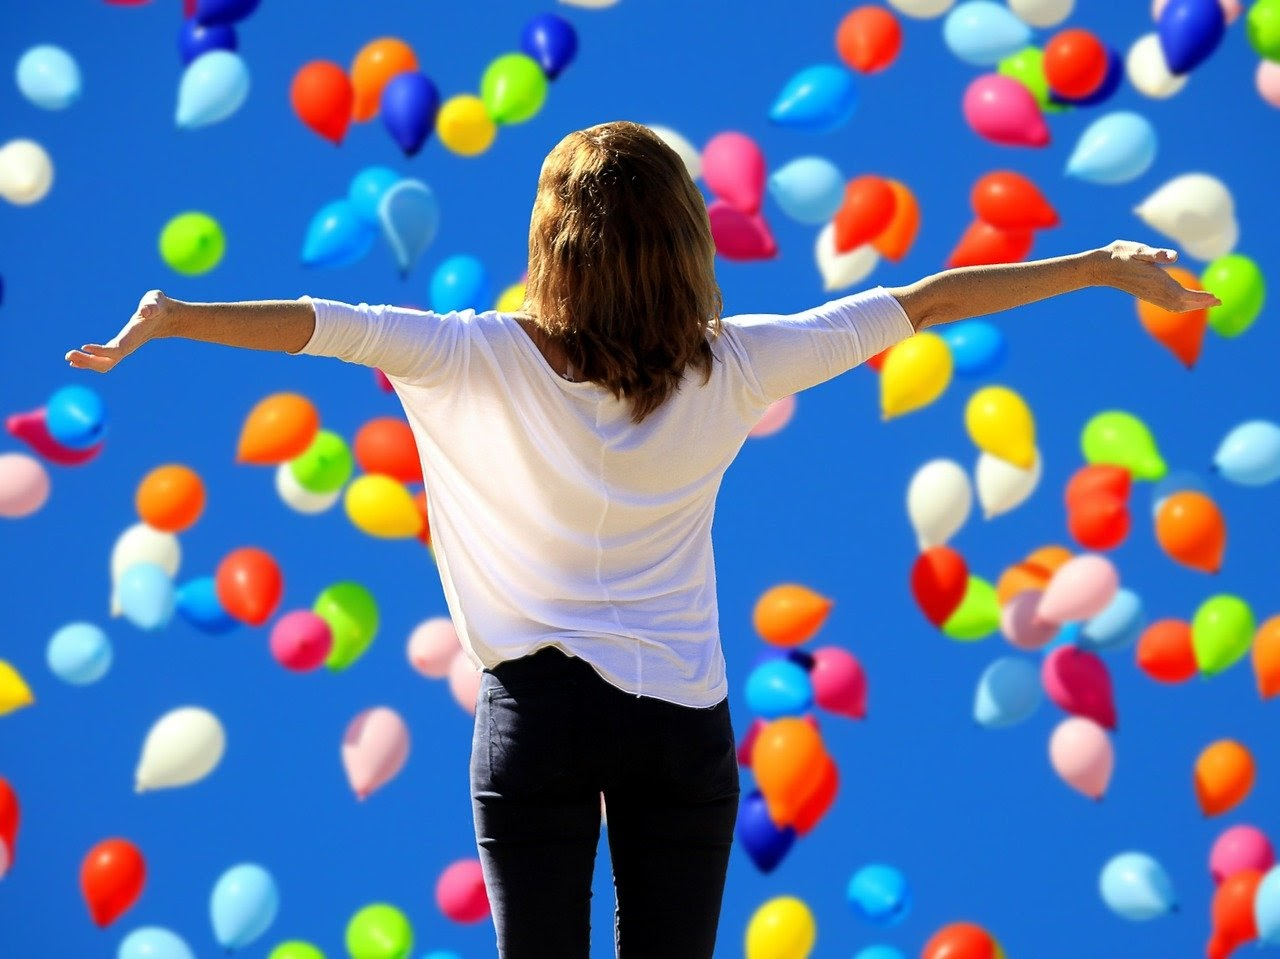 a woman celebrates her relationship with herself surrounded by balloons